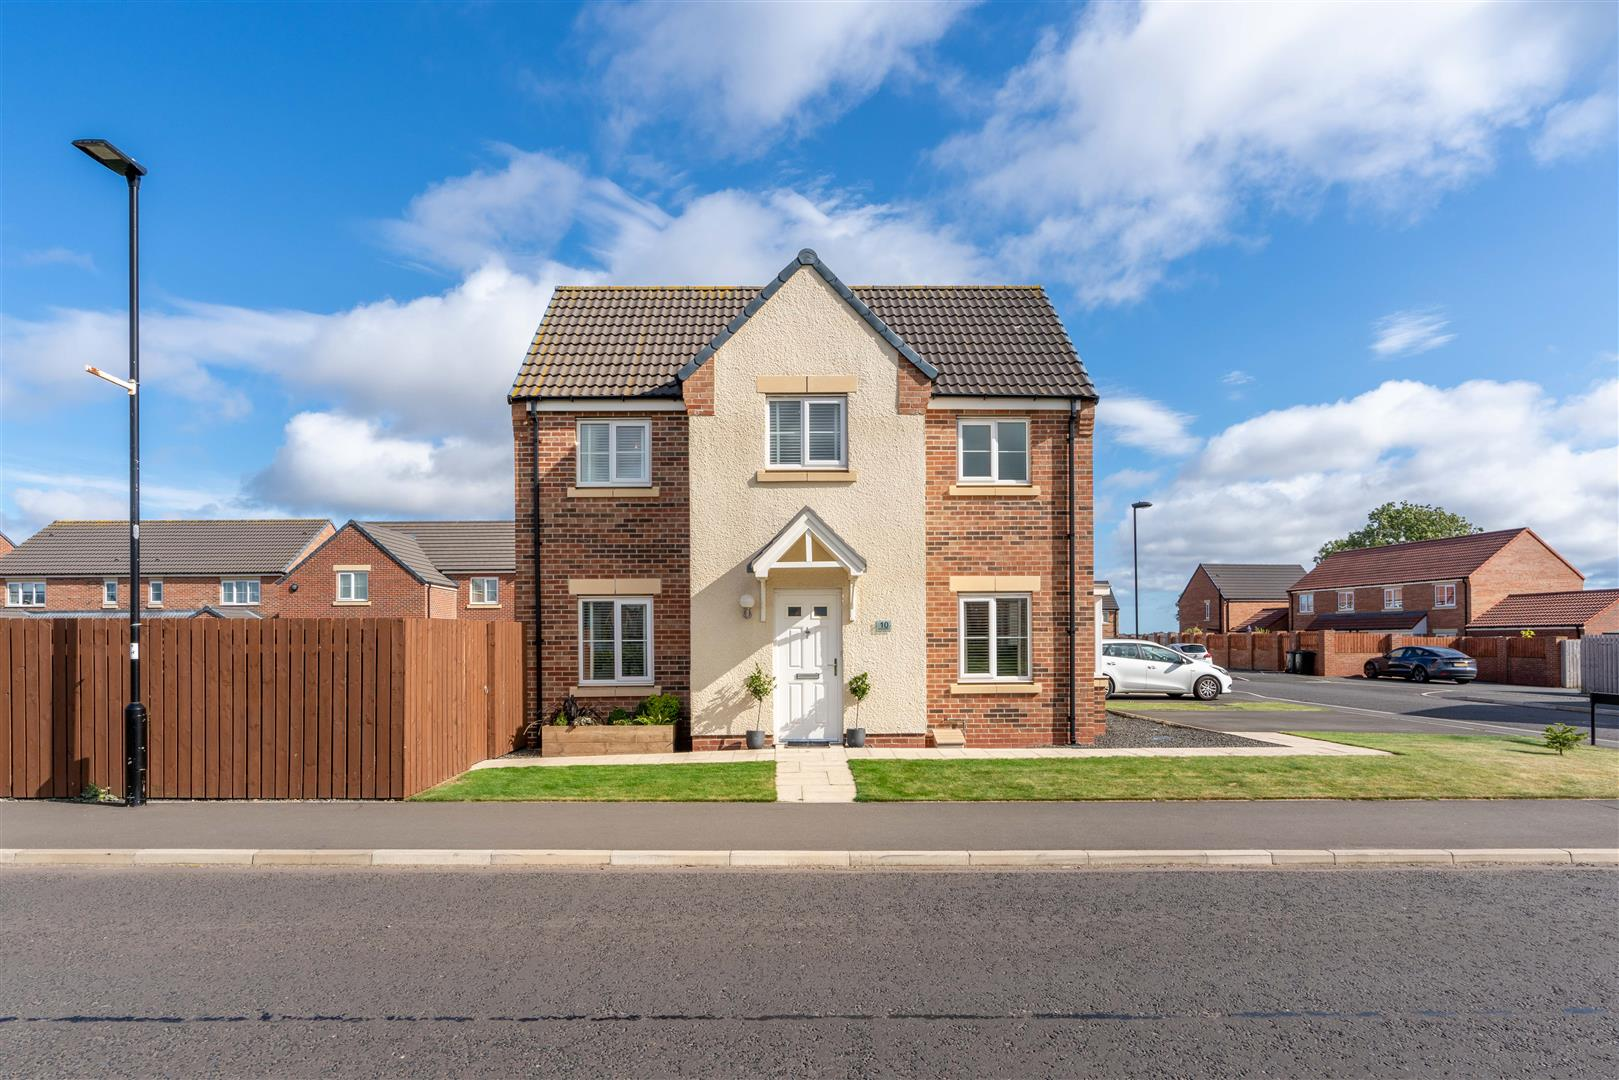 3 bed detached house for sale in Stonecrop Drive, Newcastle Upon Tyne, NE13